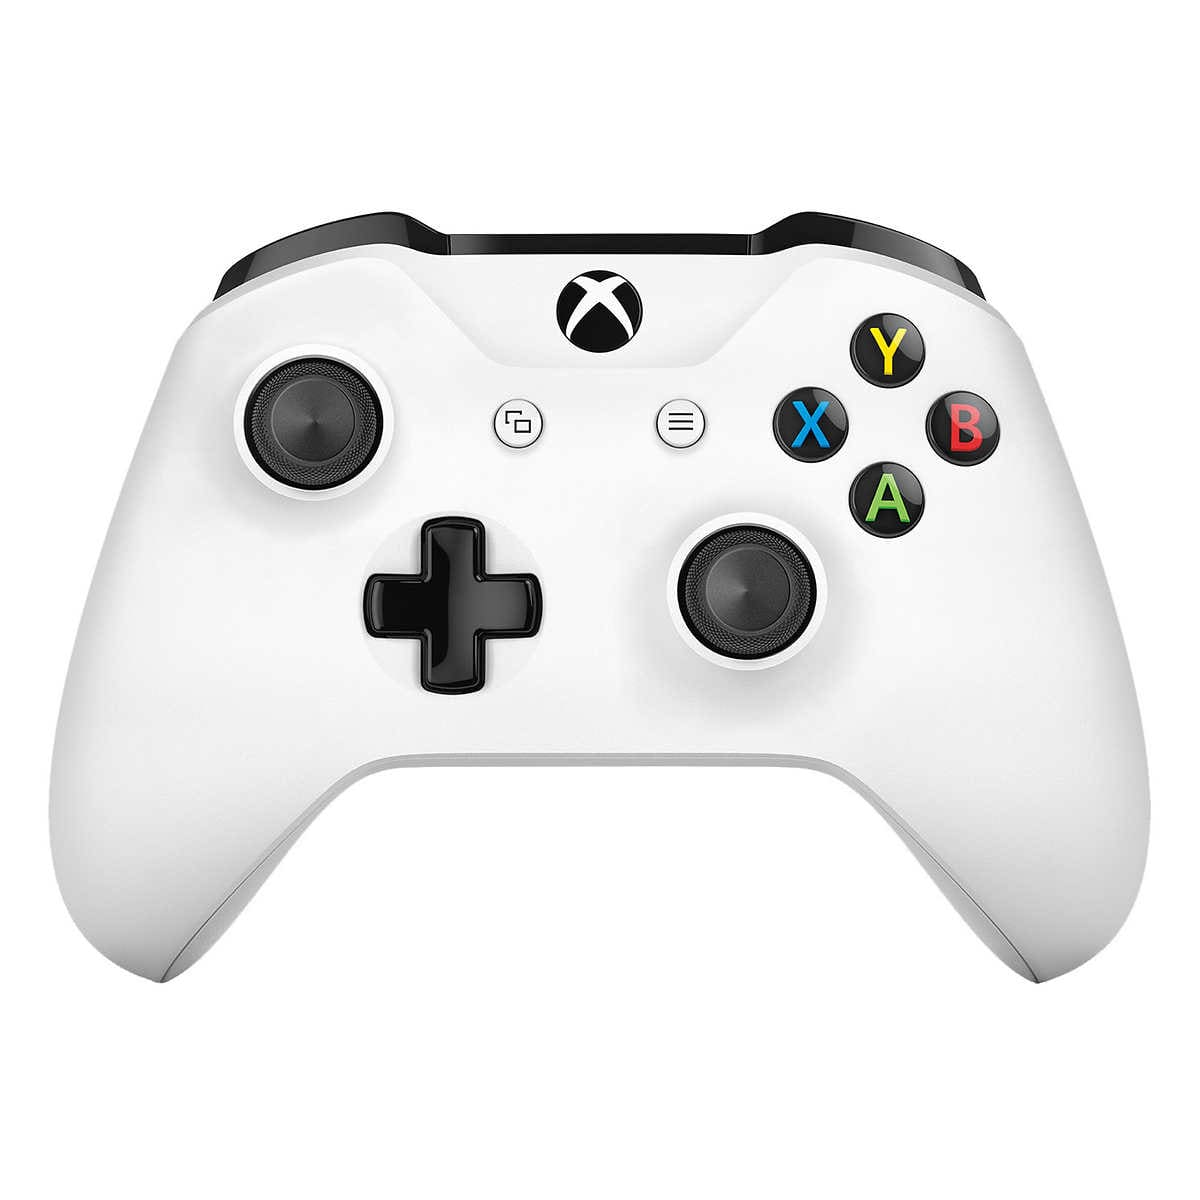 XBOX One Wireless Controller White or Black Costco $36.99 after $10 off